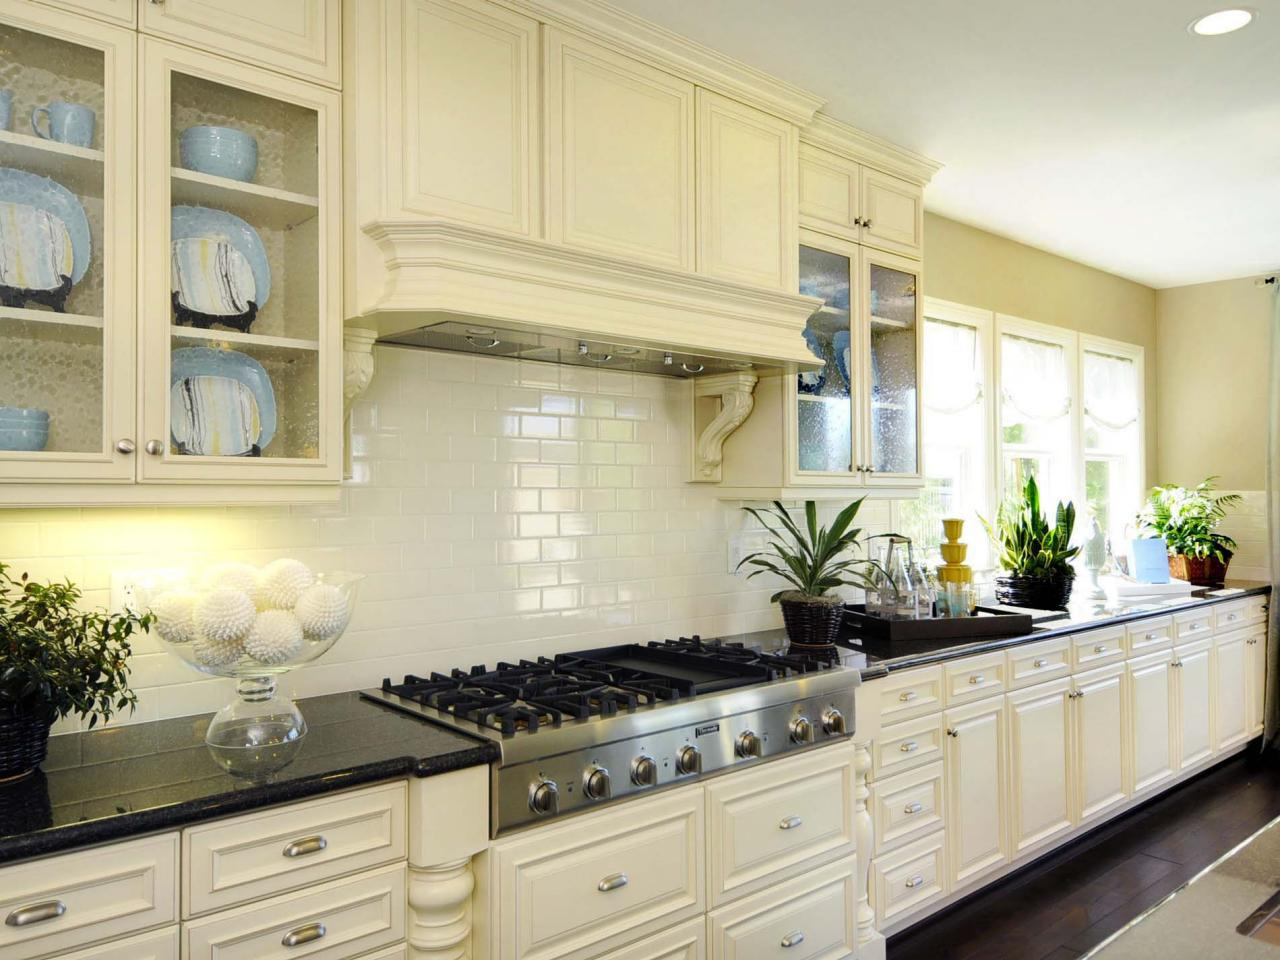 Image of: white kitchen backsplash tile